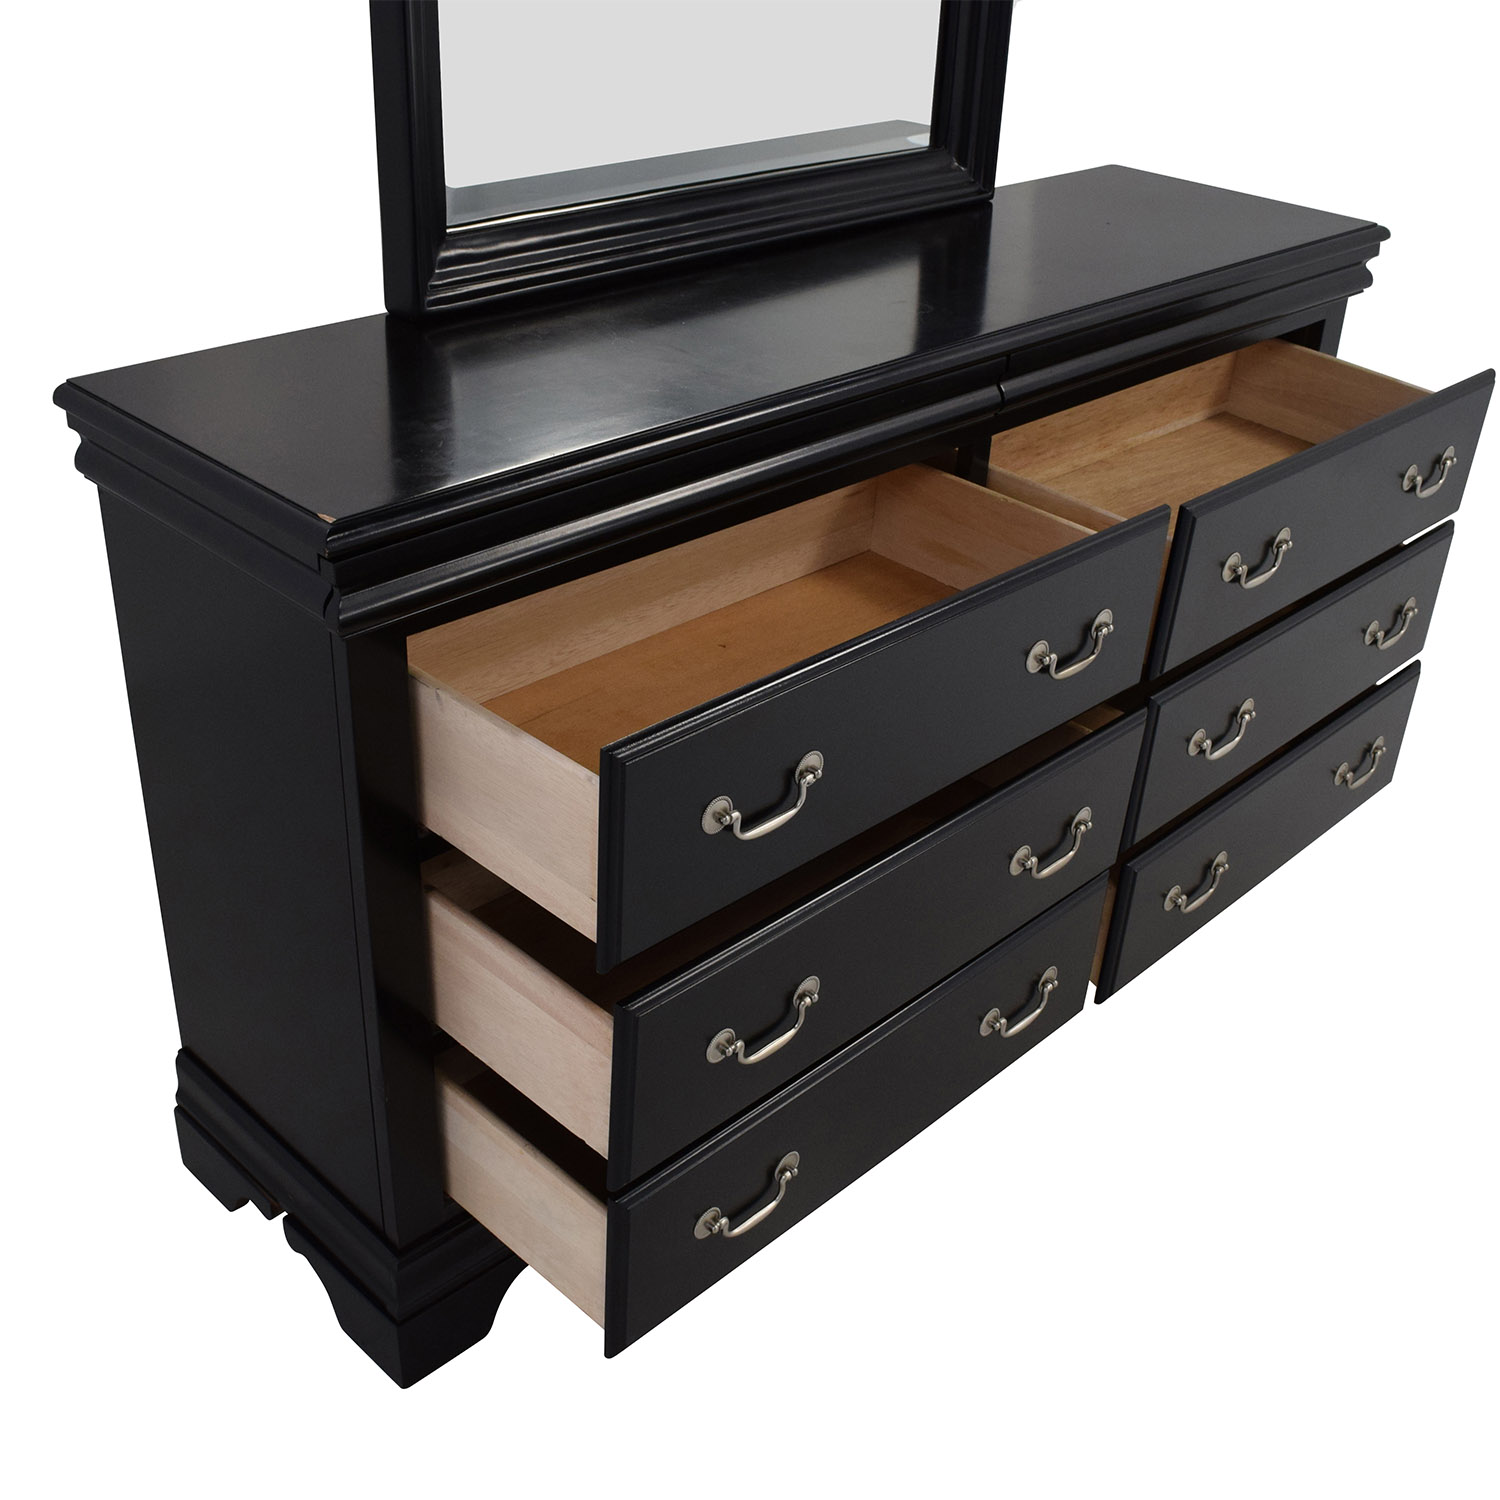 58 Off Bob 39 S Furniture Bob 39 S Furniture Louie Dresser With Mirror Storage